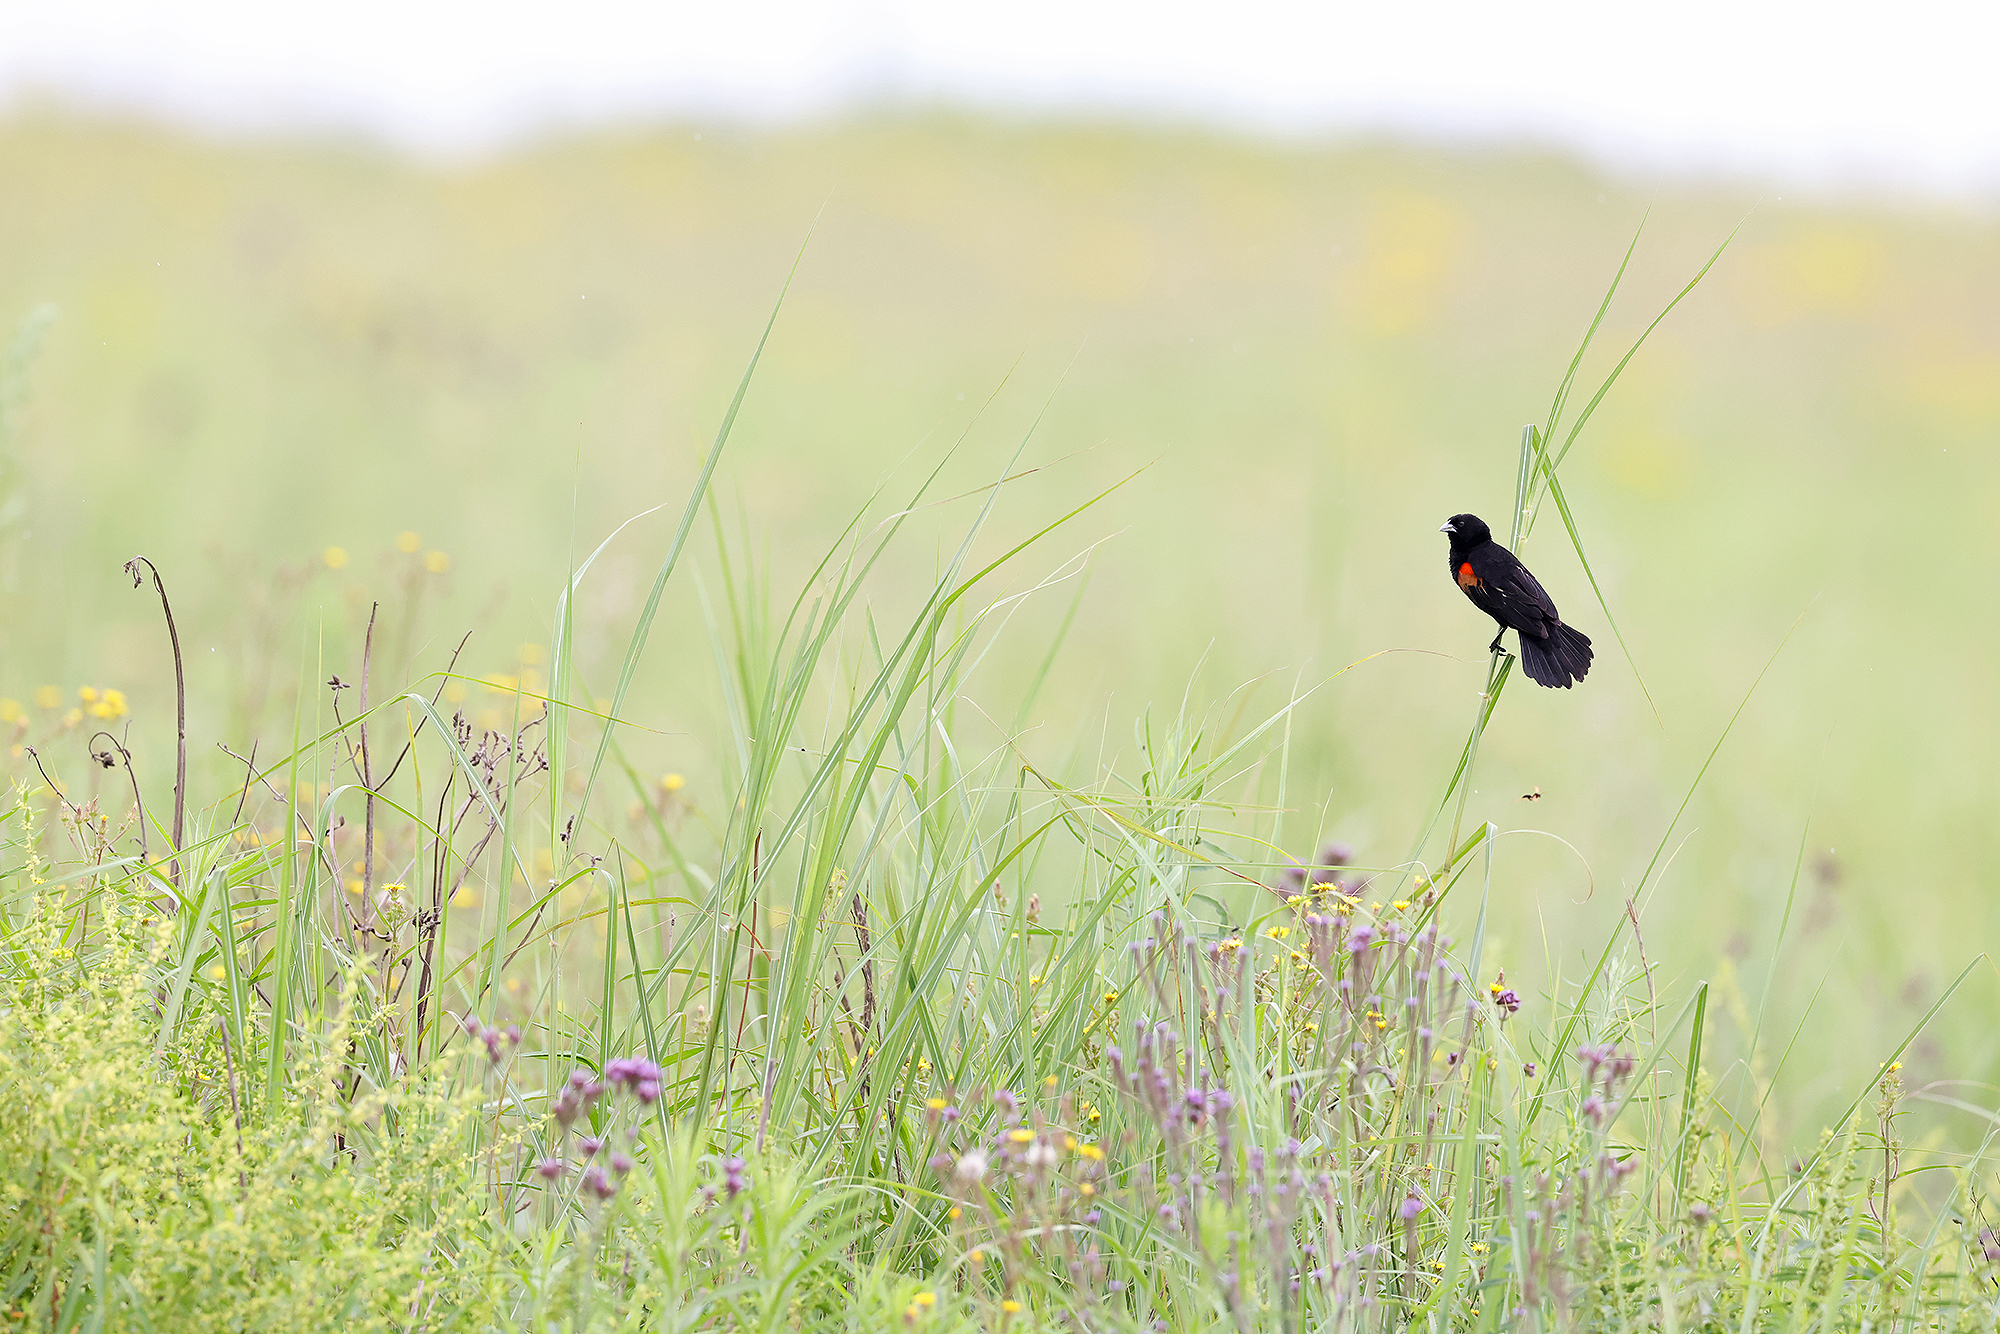 A Fan-tailed Widowbird perches in a field of wild flowers at Thurlow Nature Reserve, Natal Midlands, South Africa.